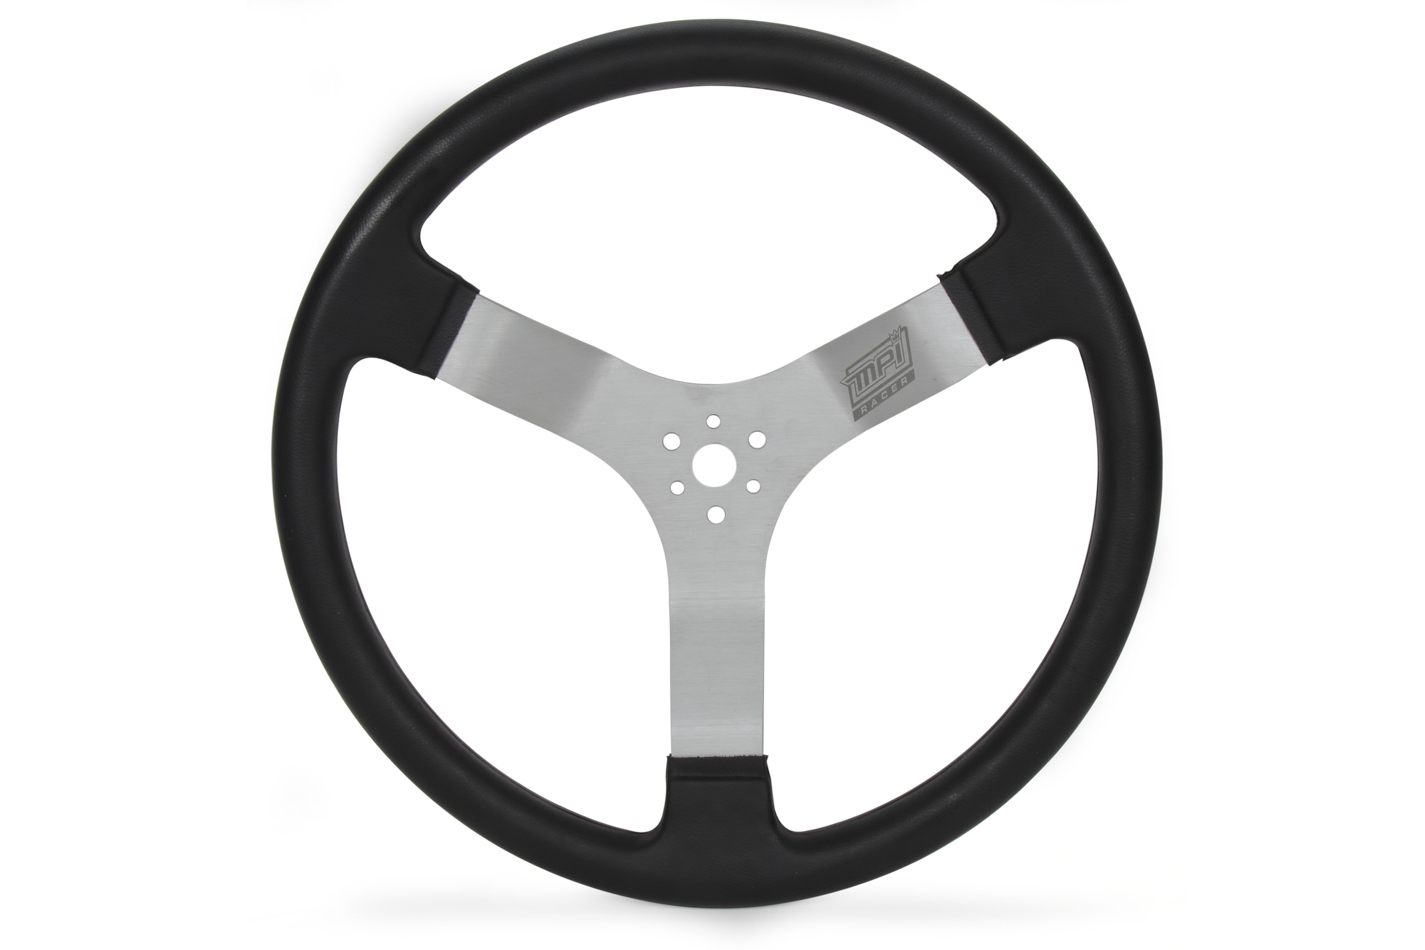 Racer Steering Wheel Discontinued 6/20